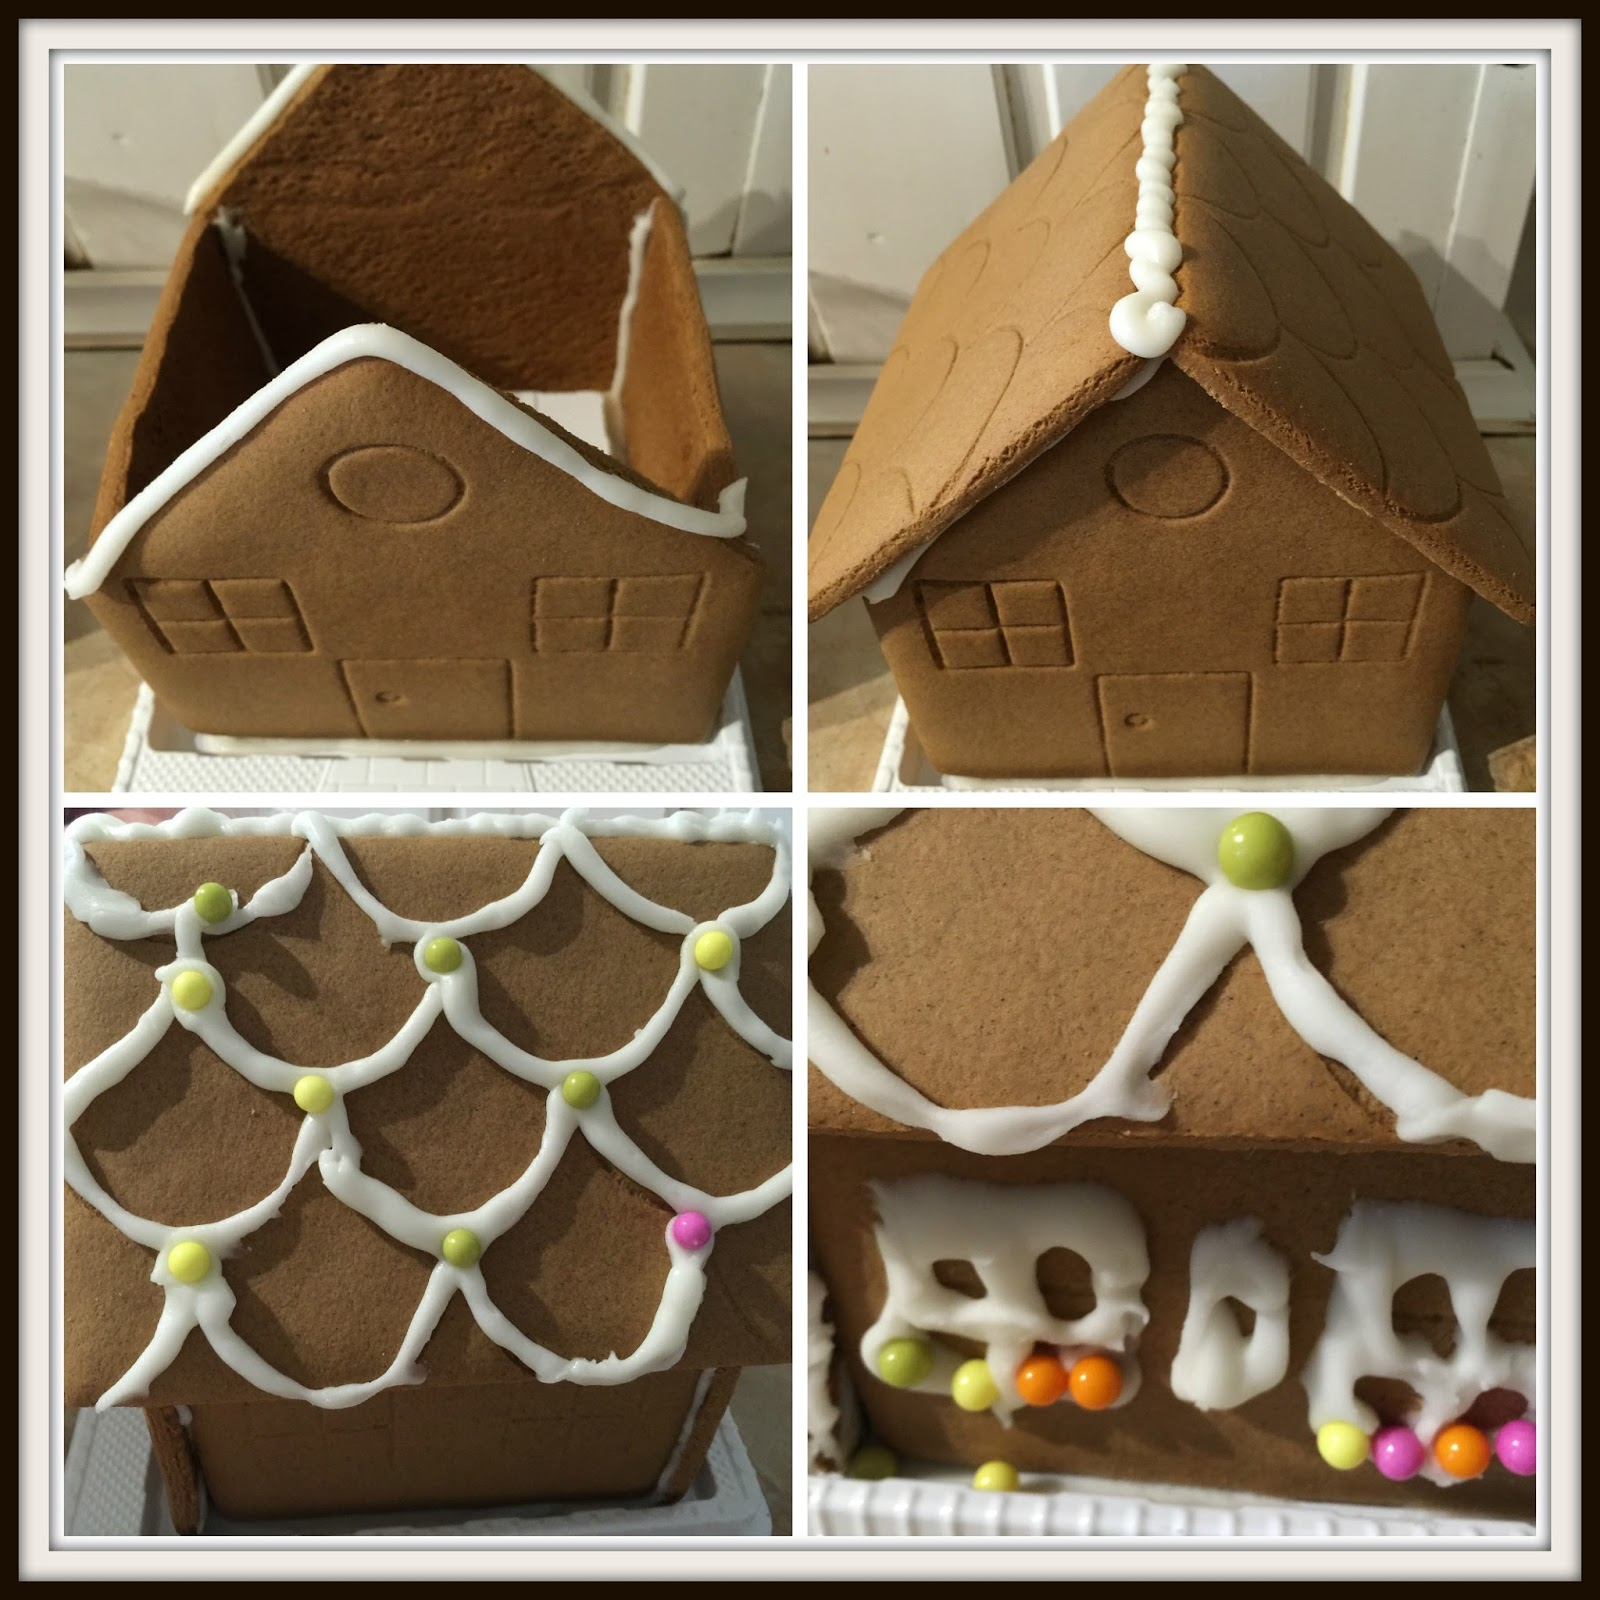 asda gingerbread house kit